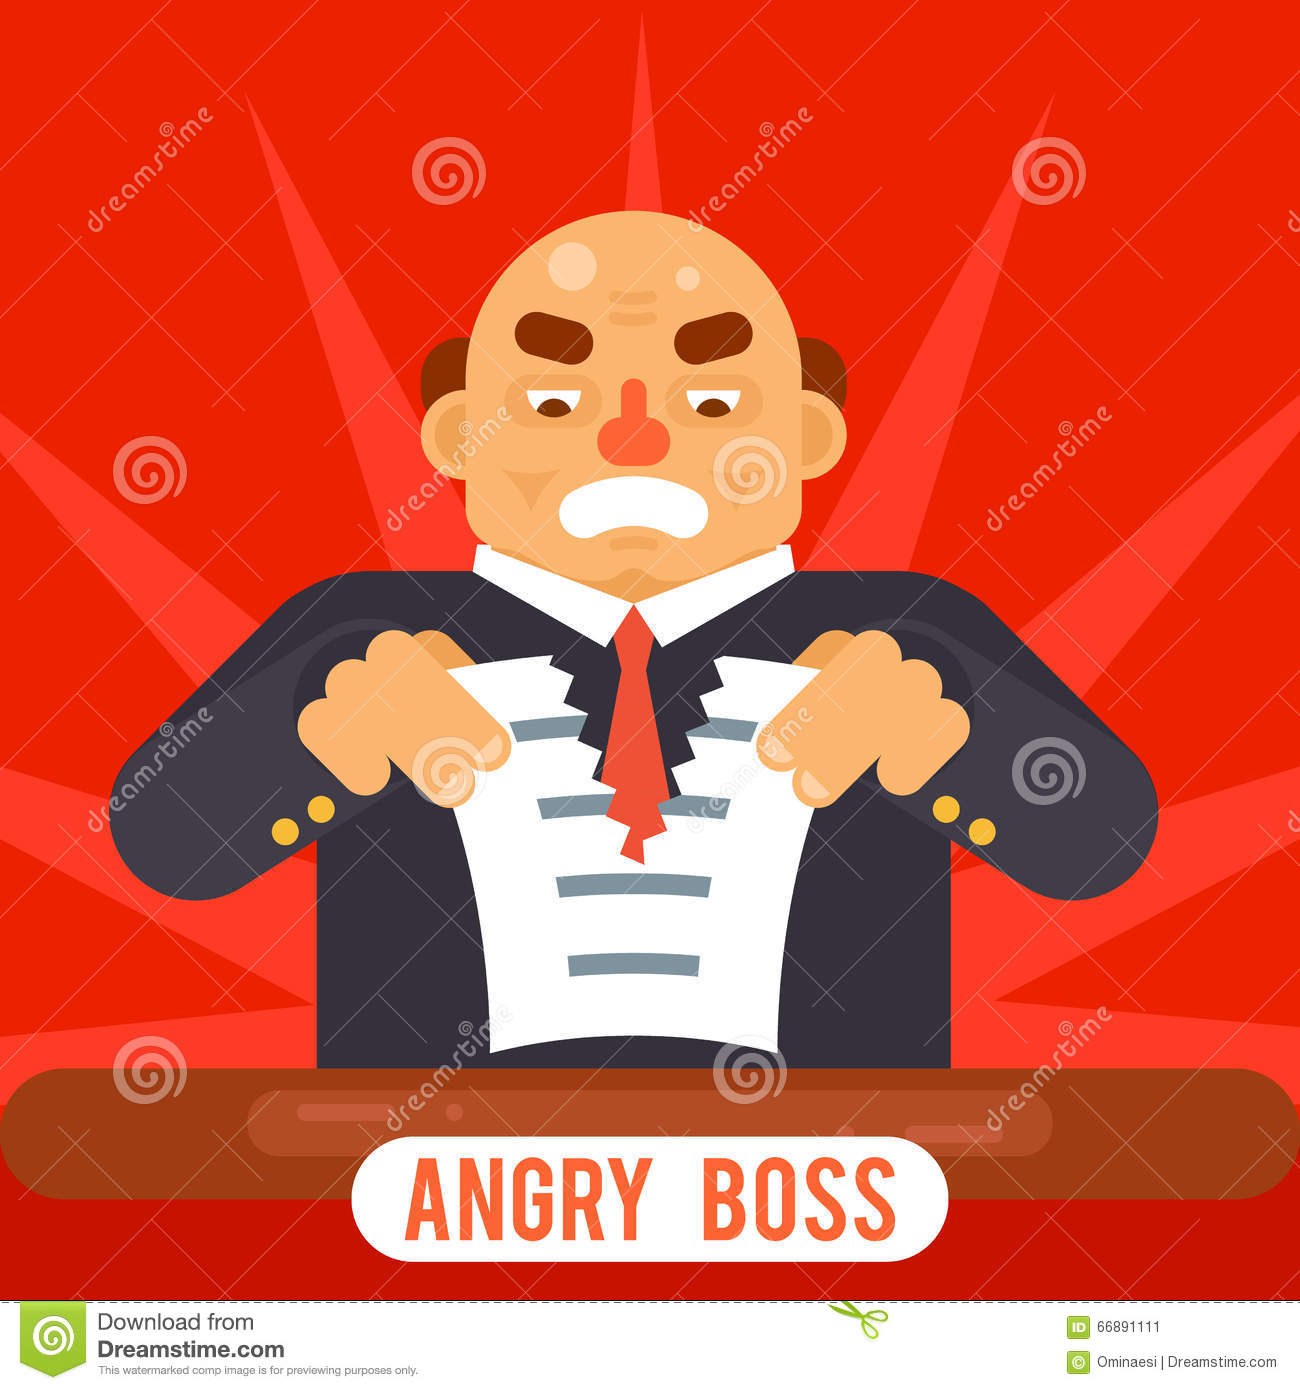 angry boss tearing sheet white paper contract character symbol